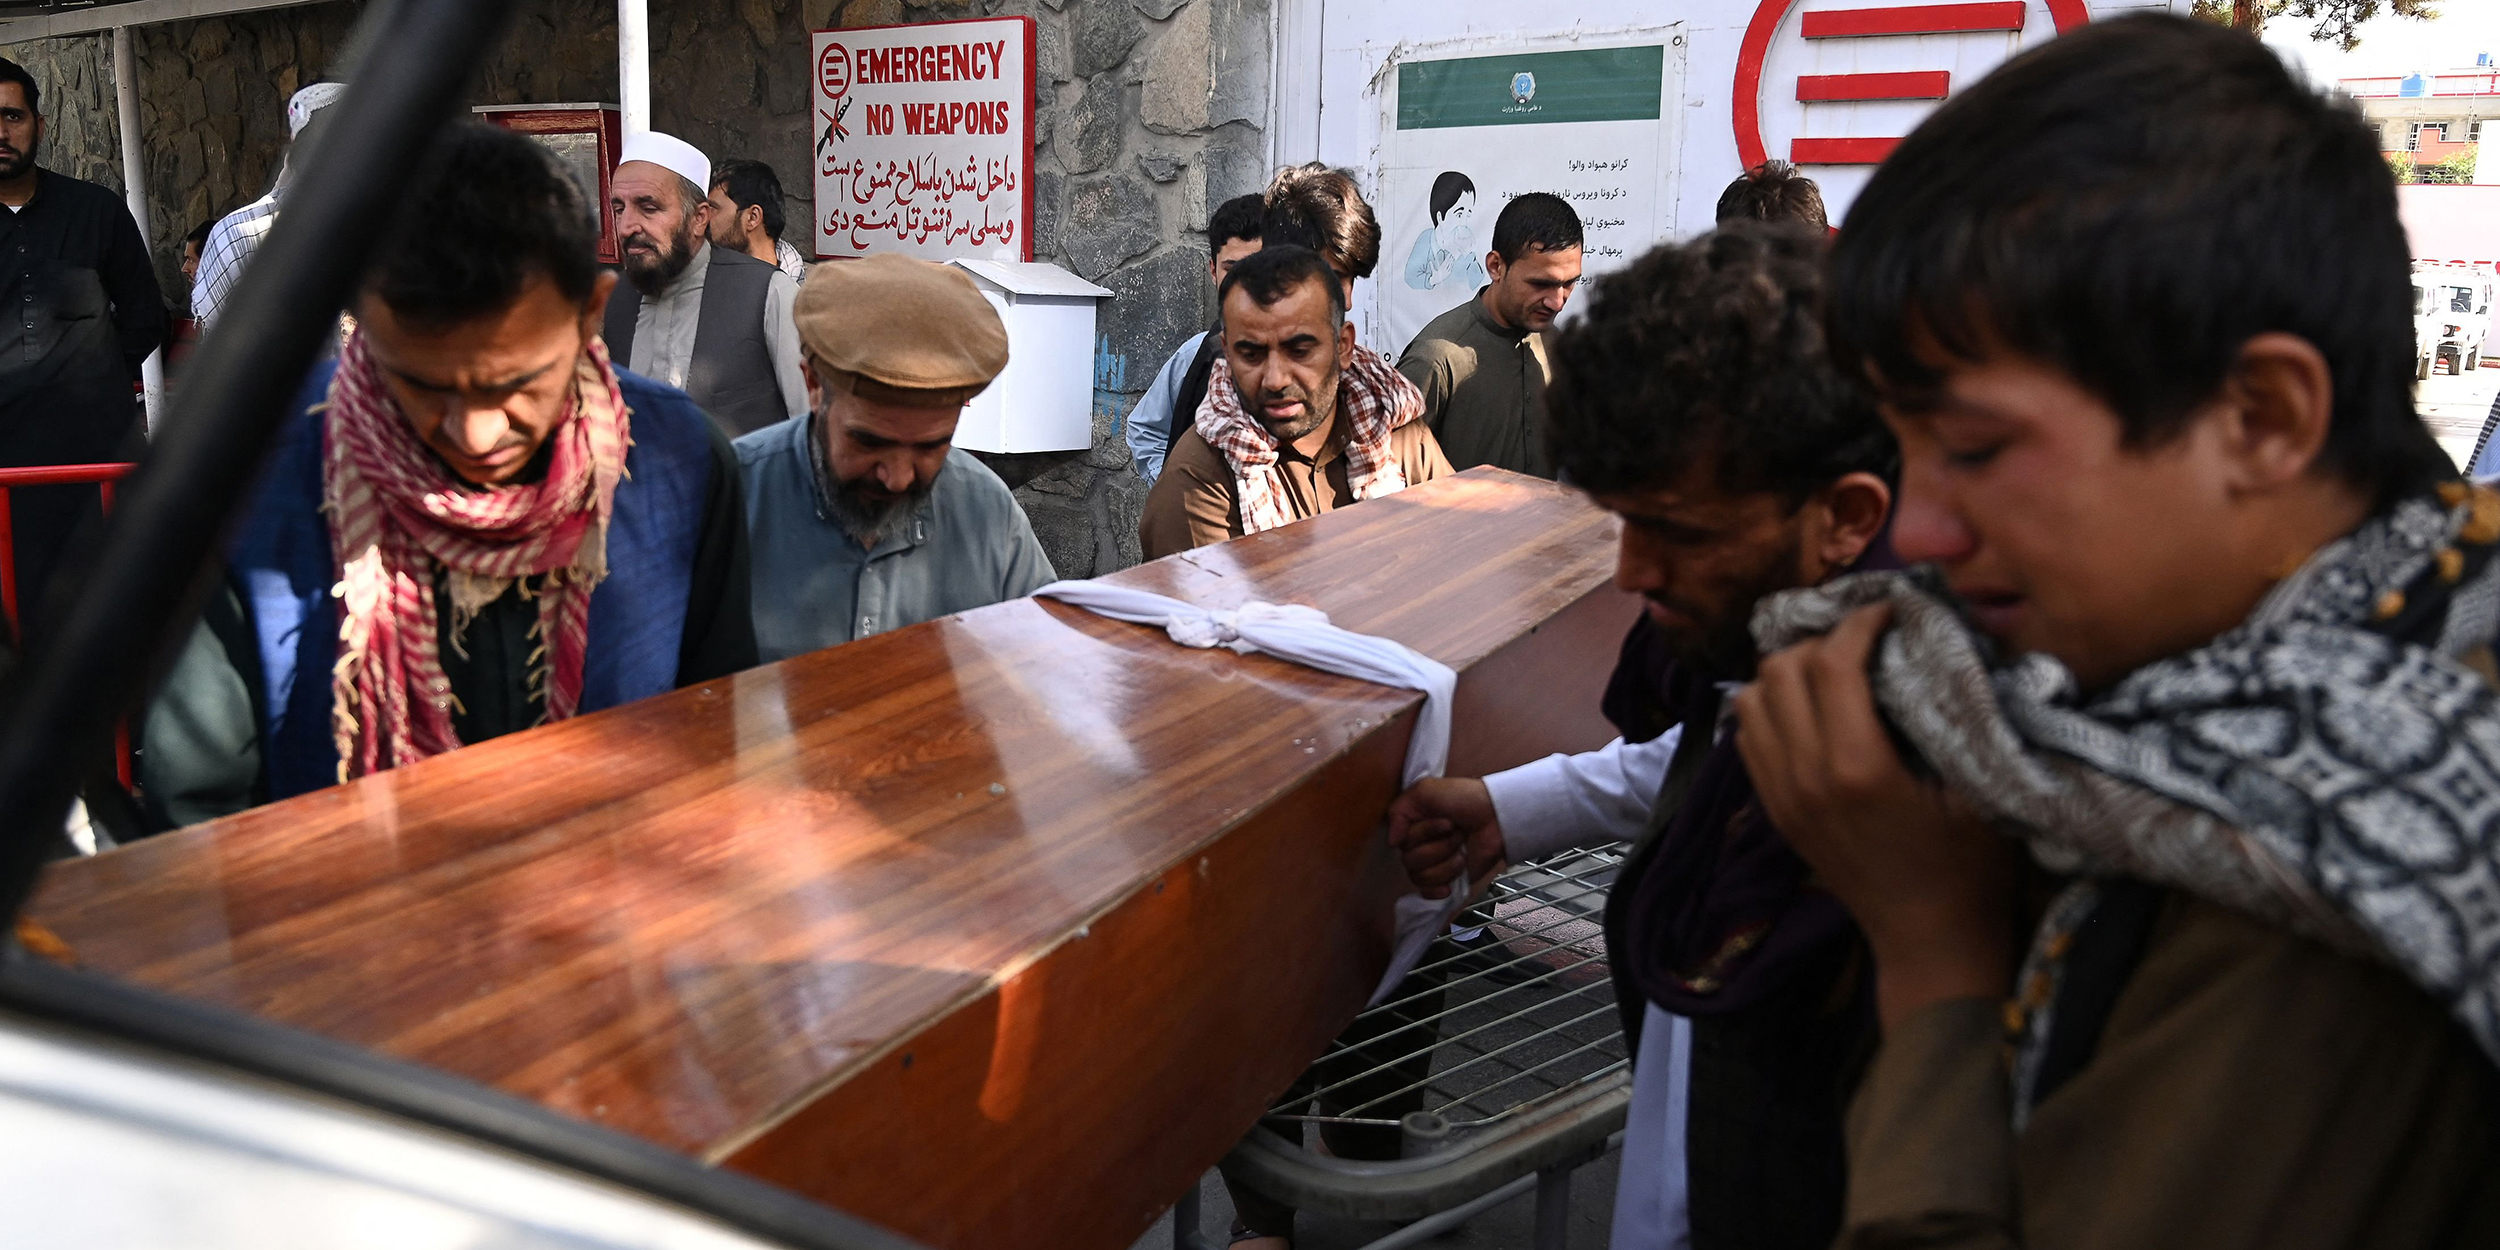 Race to evacuate resumes, day after more than 100 are killed in Kabul blast